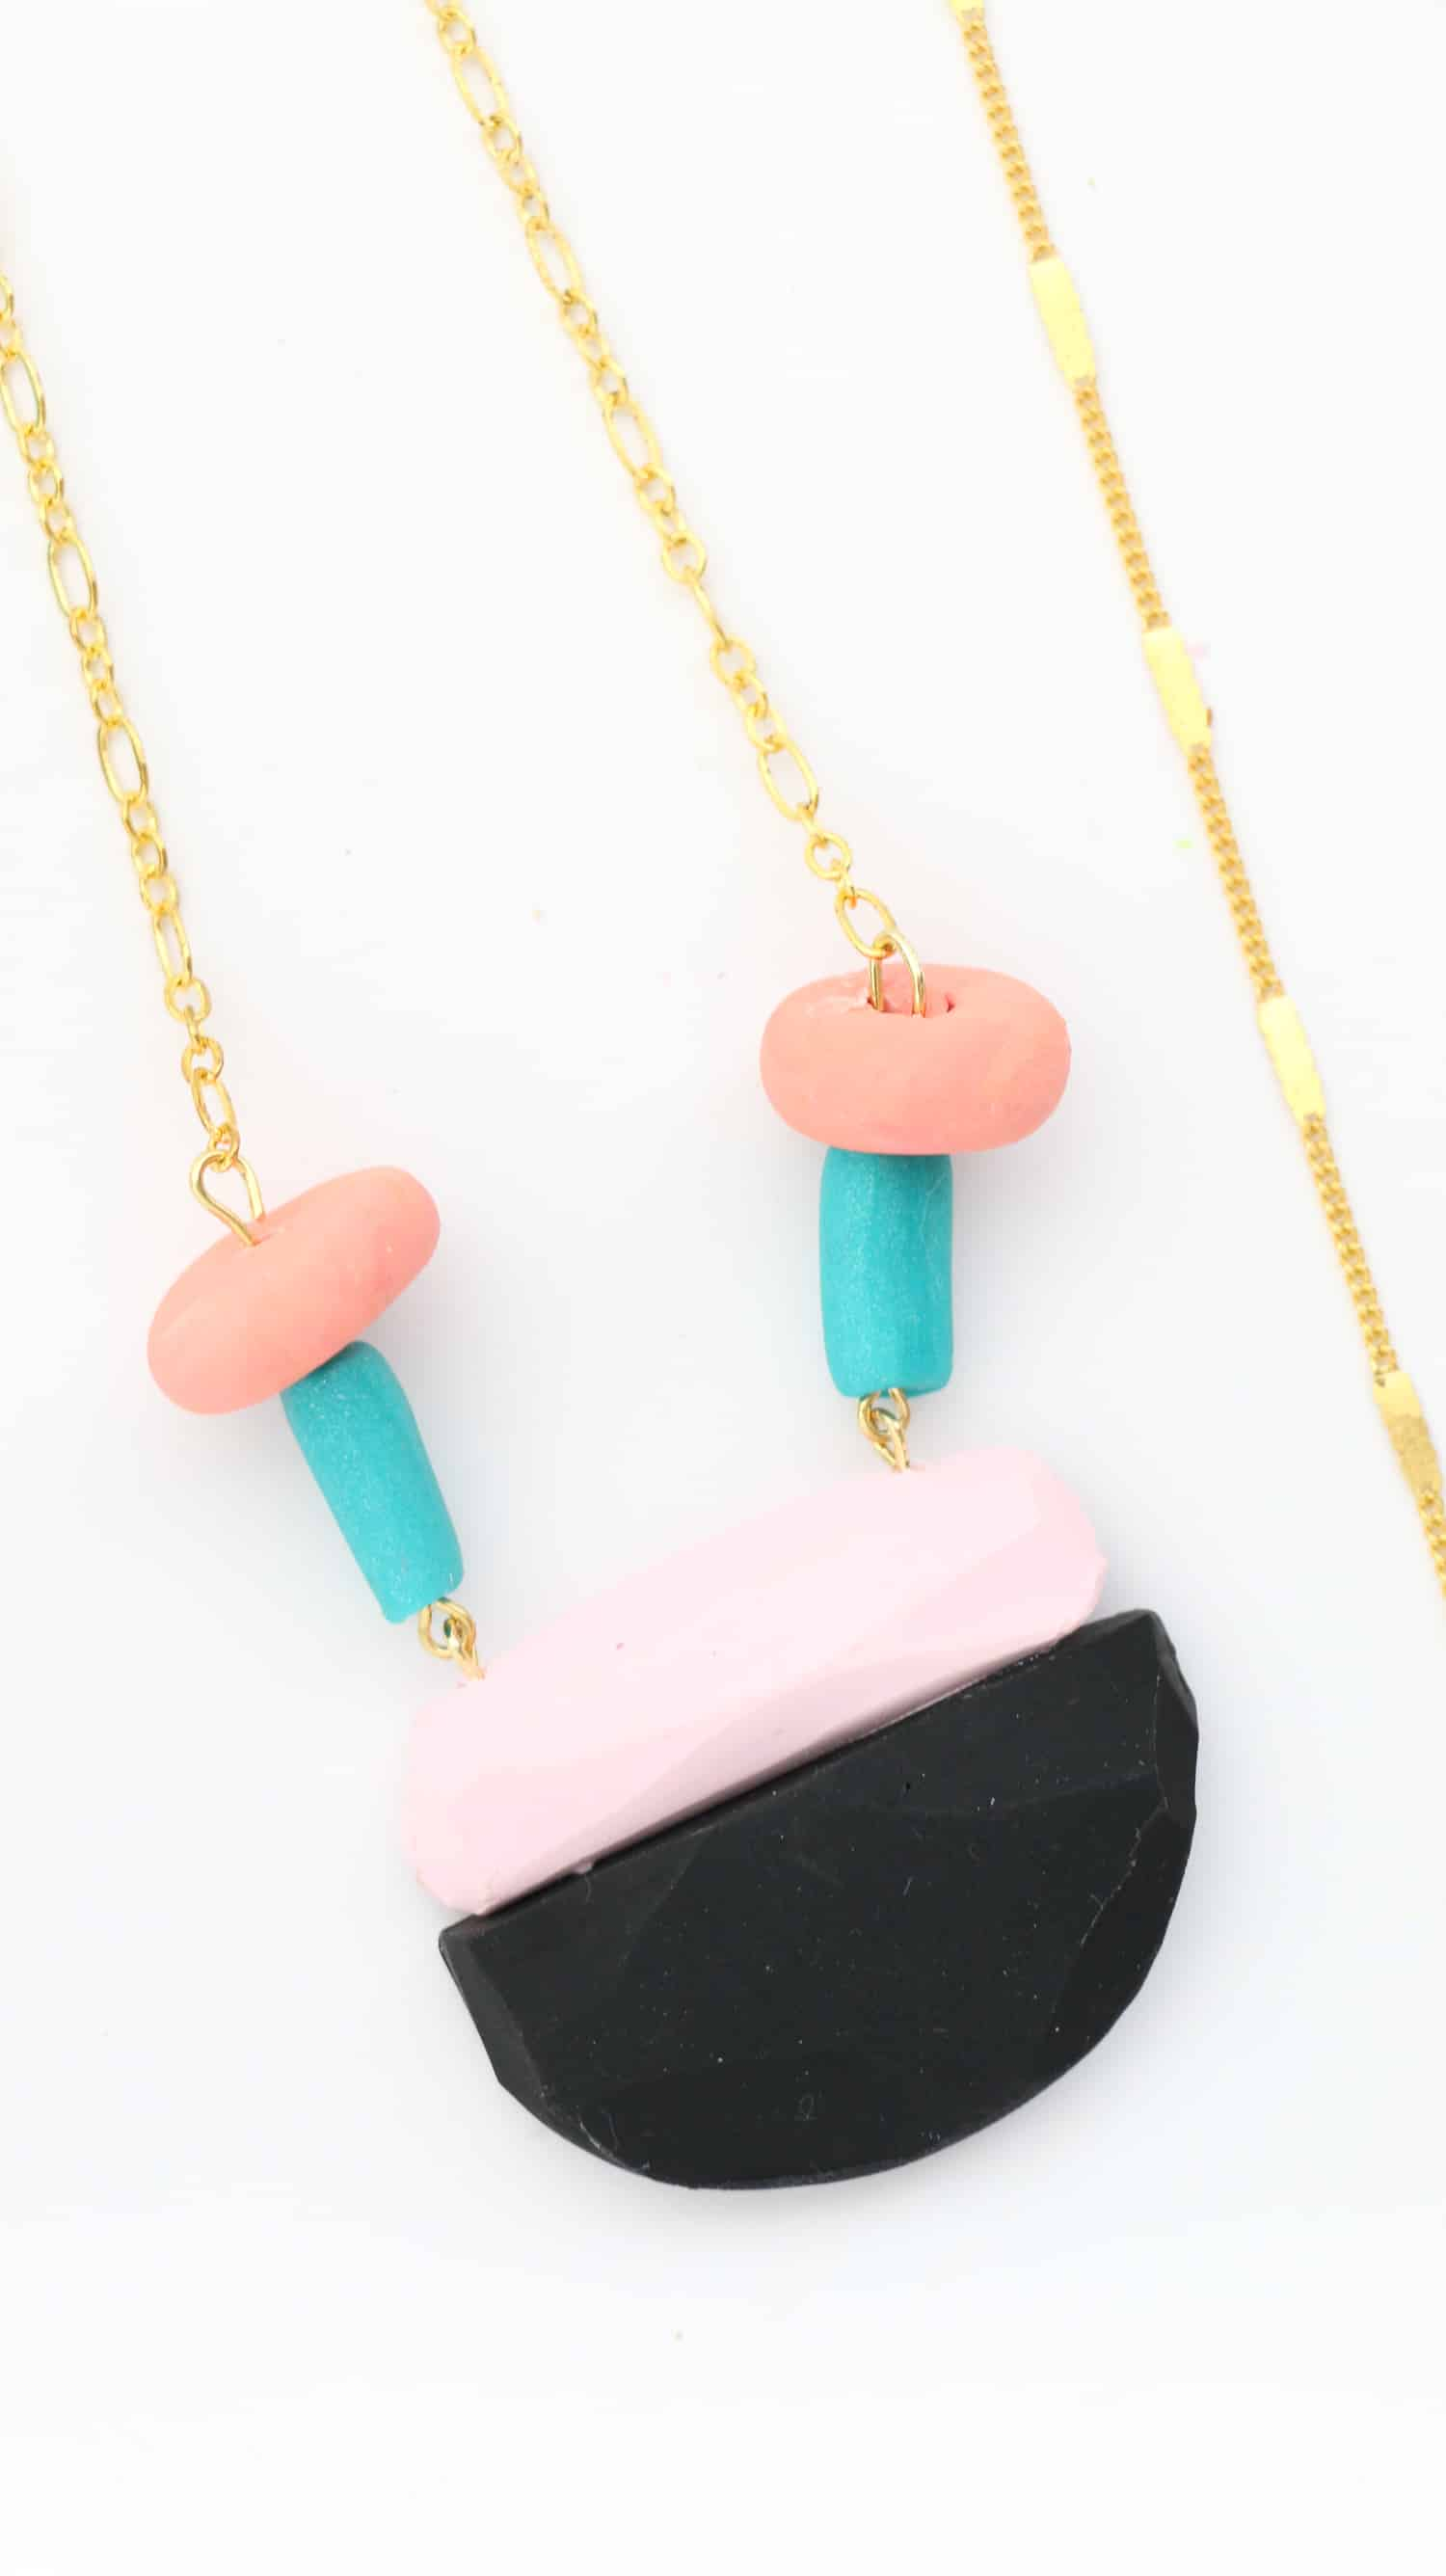 DIY-Colorful-Geometric-Necklaces-click-through-for-tutorial-_-4